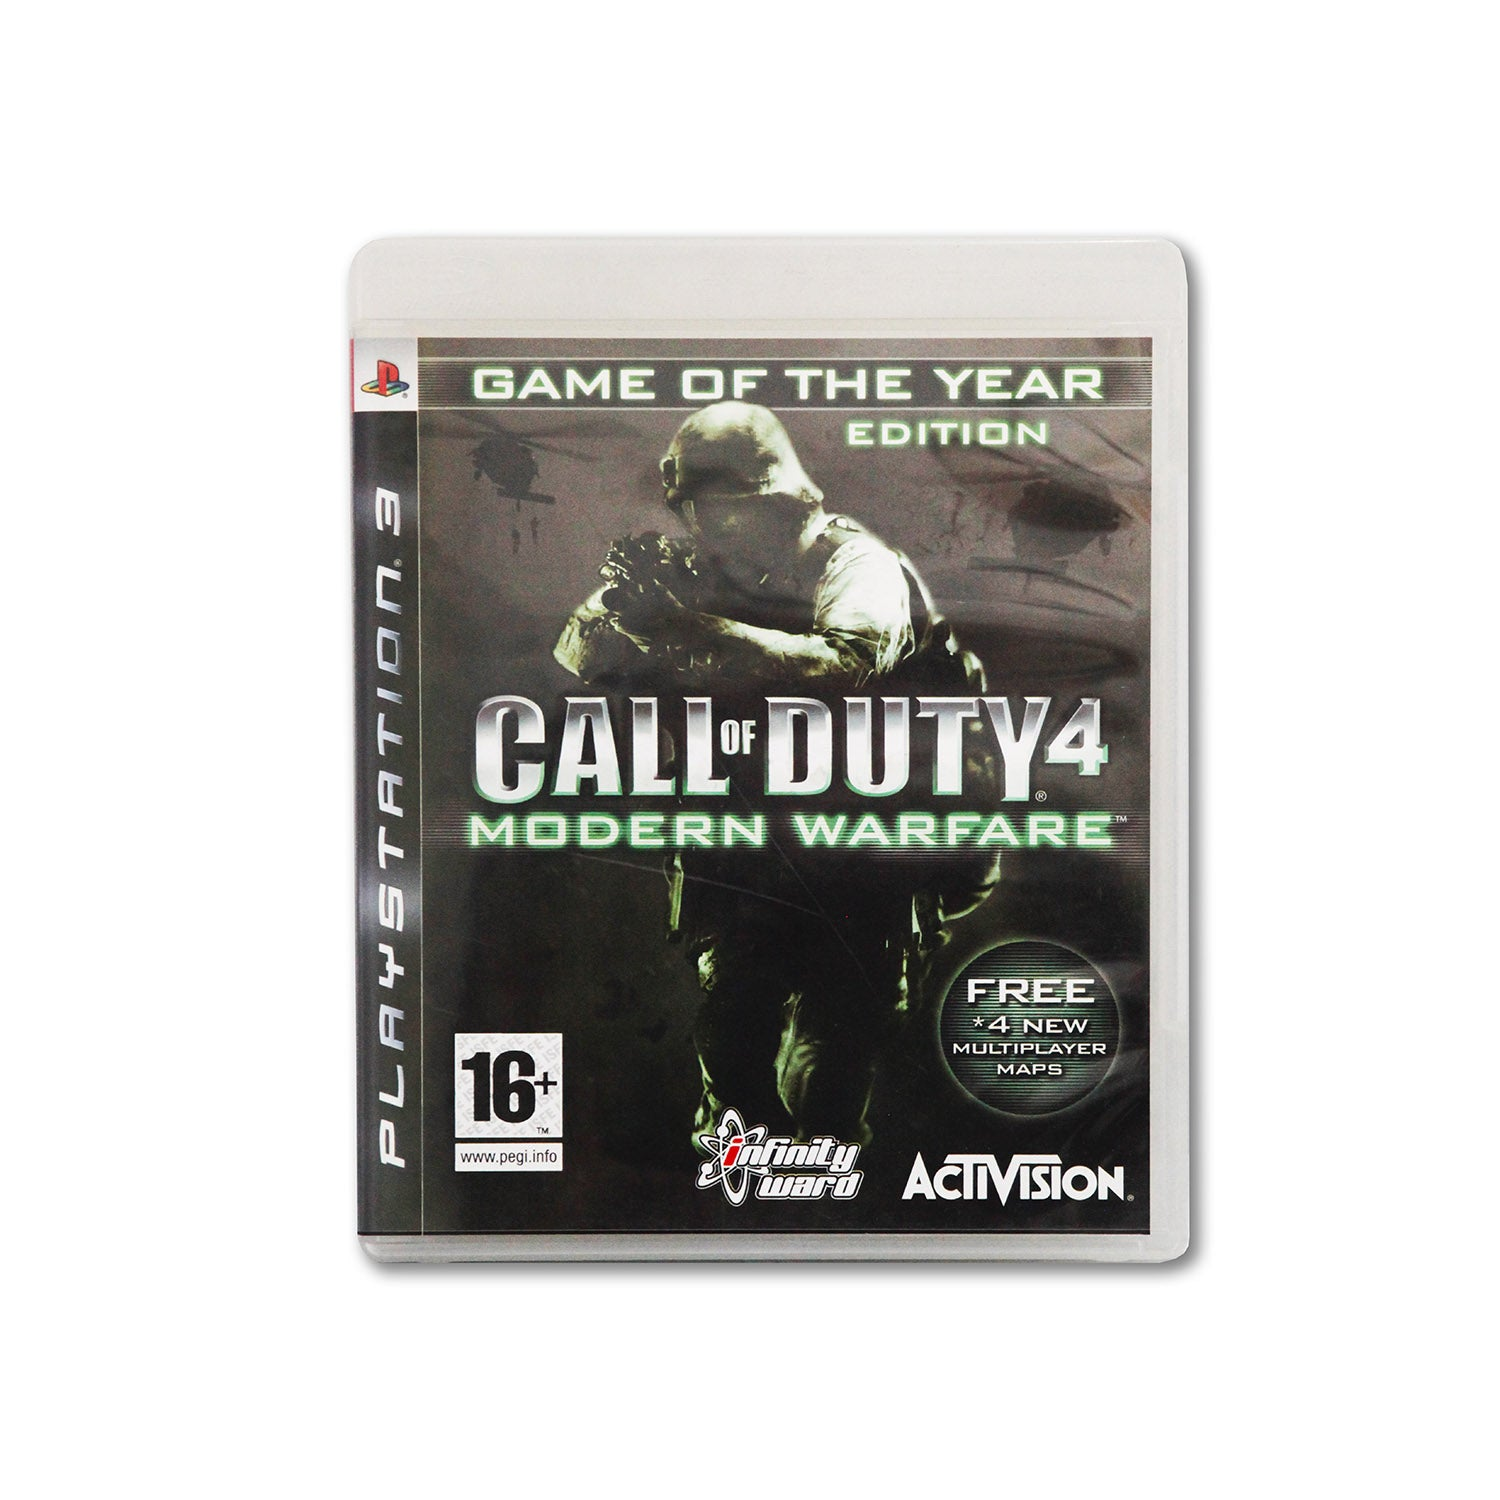 PS3 The Call of Duty 4: Modern Warfare